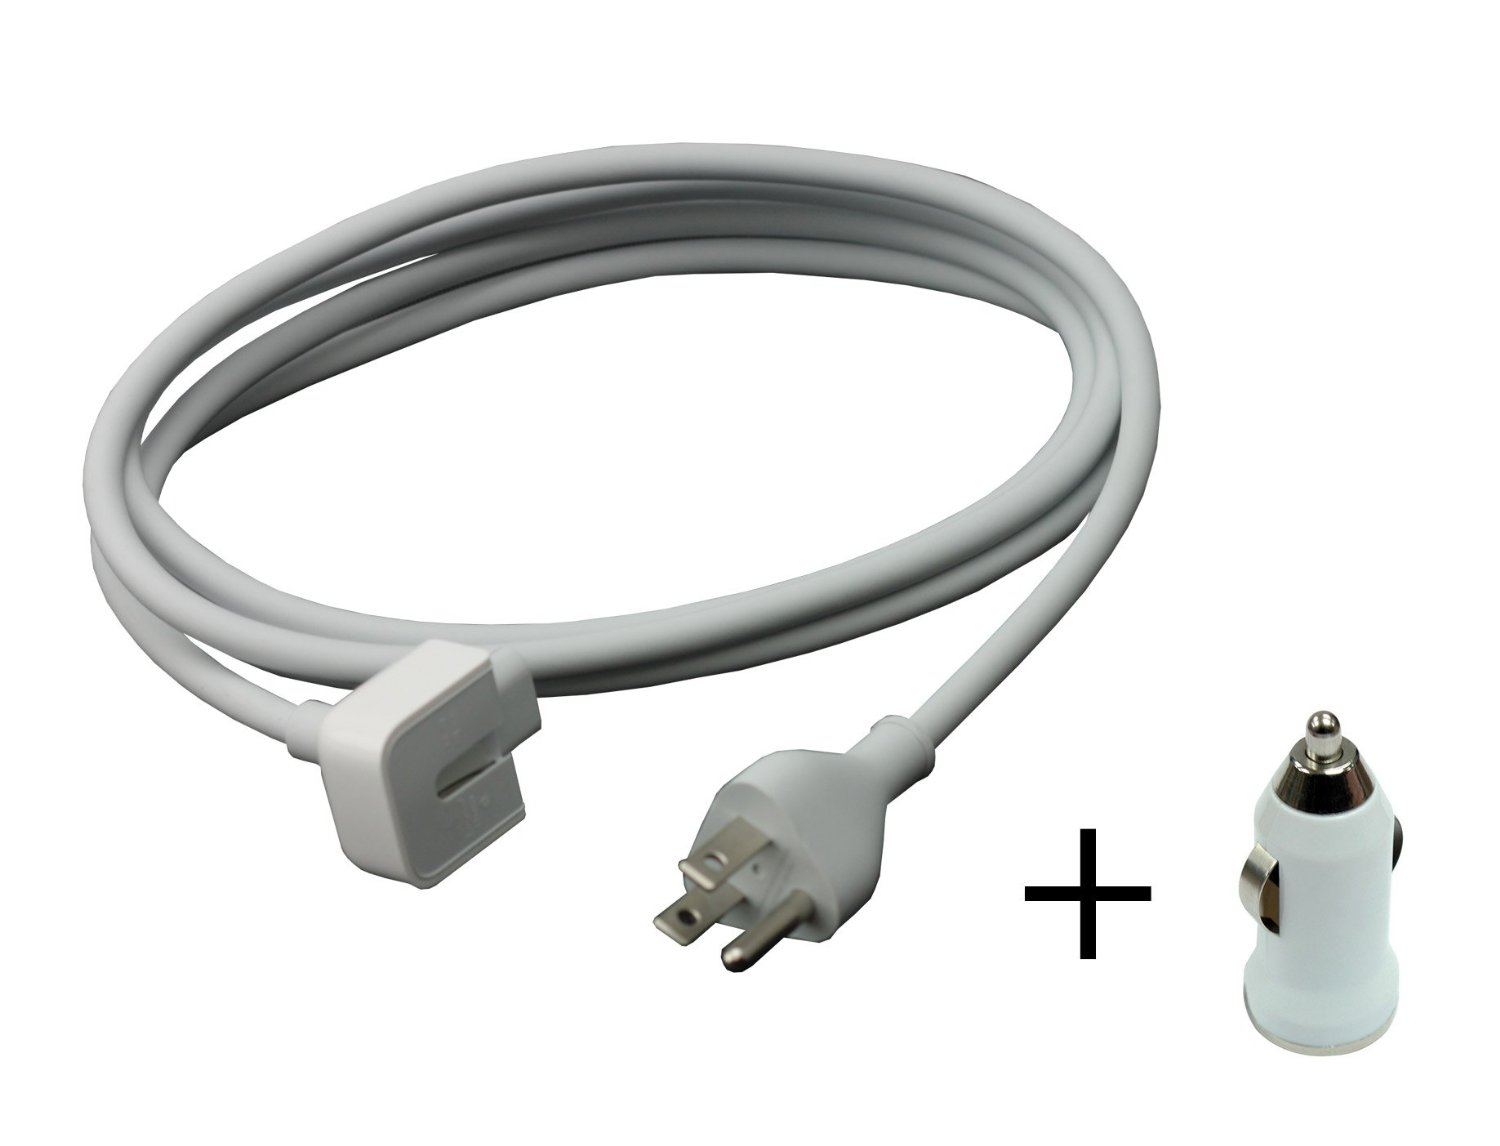 Cheap Car Charger Apple Macbook, find Car Charger Apple